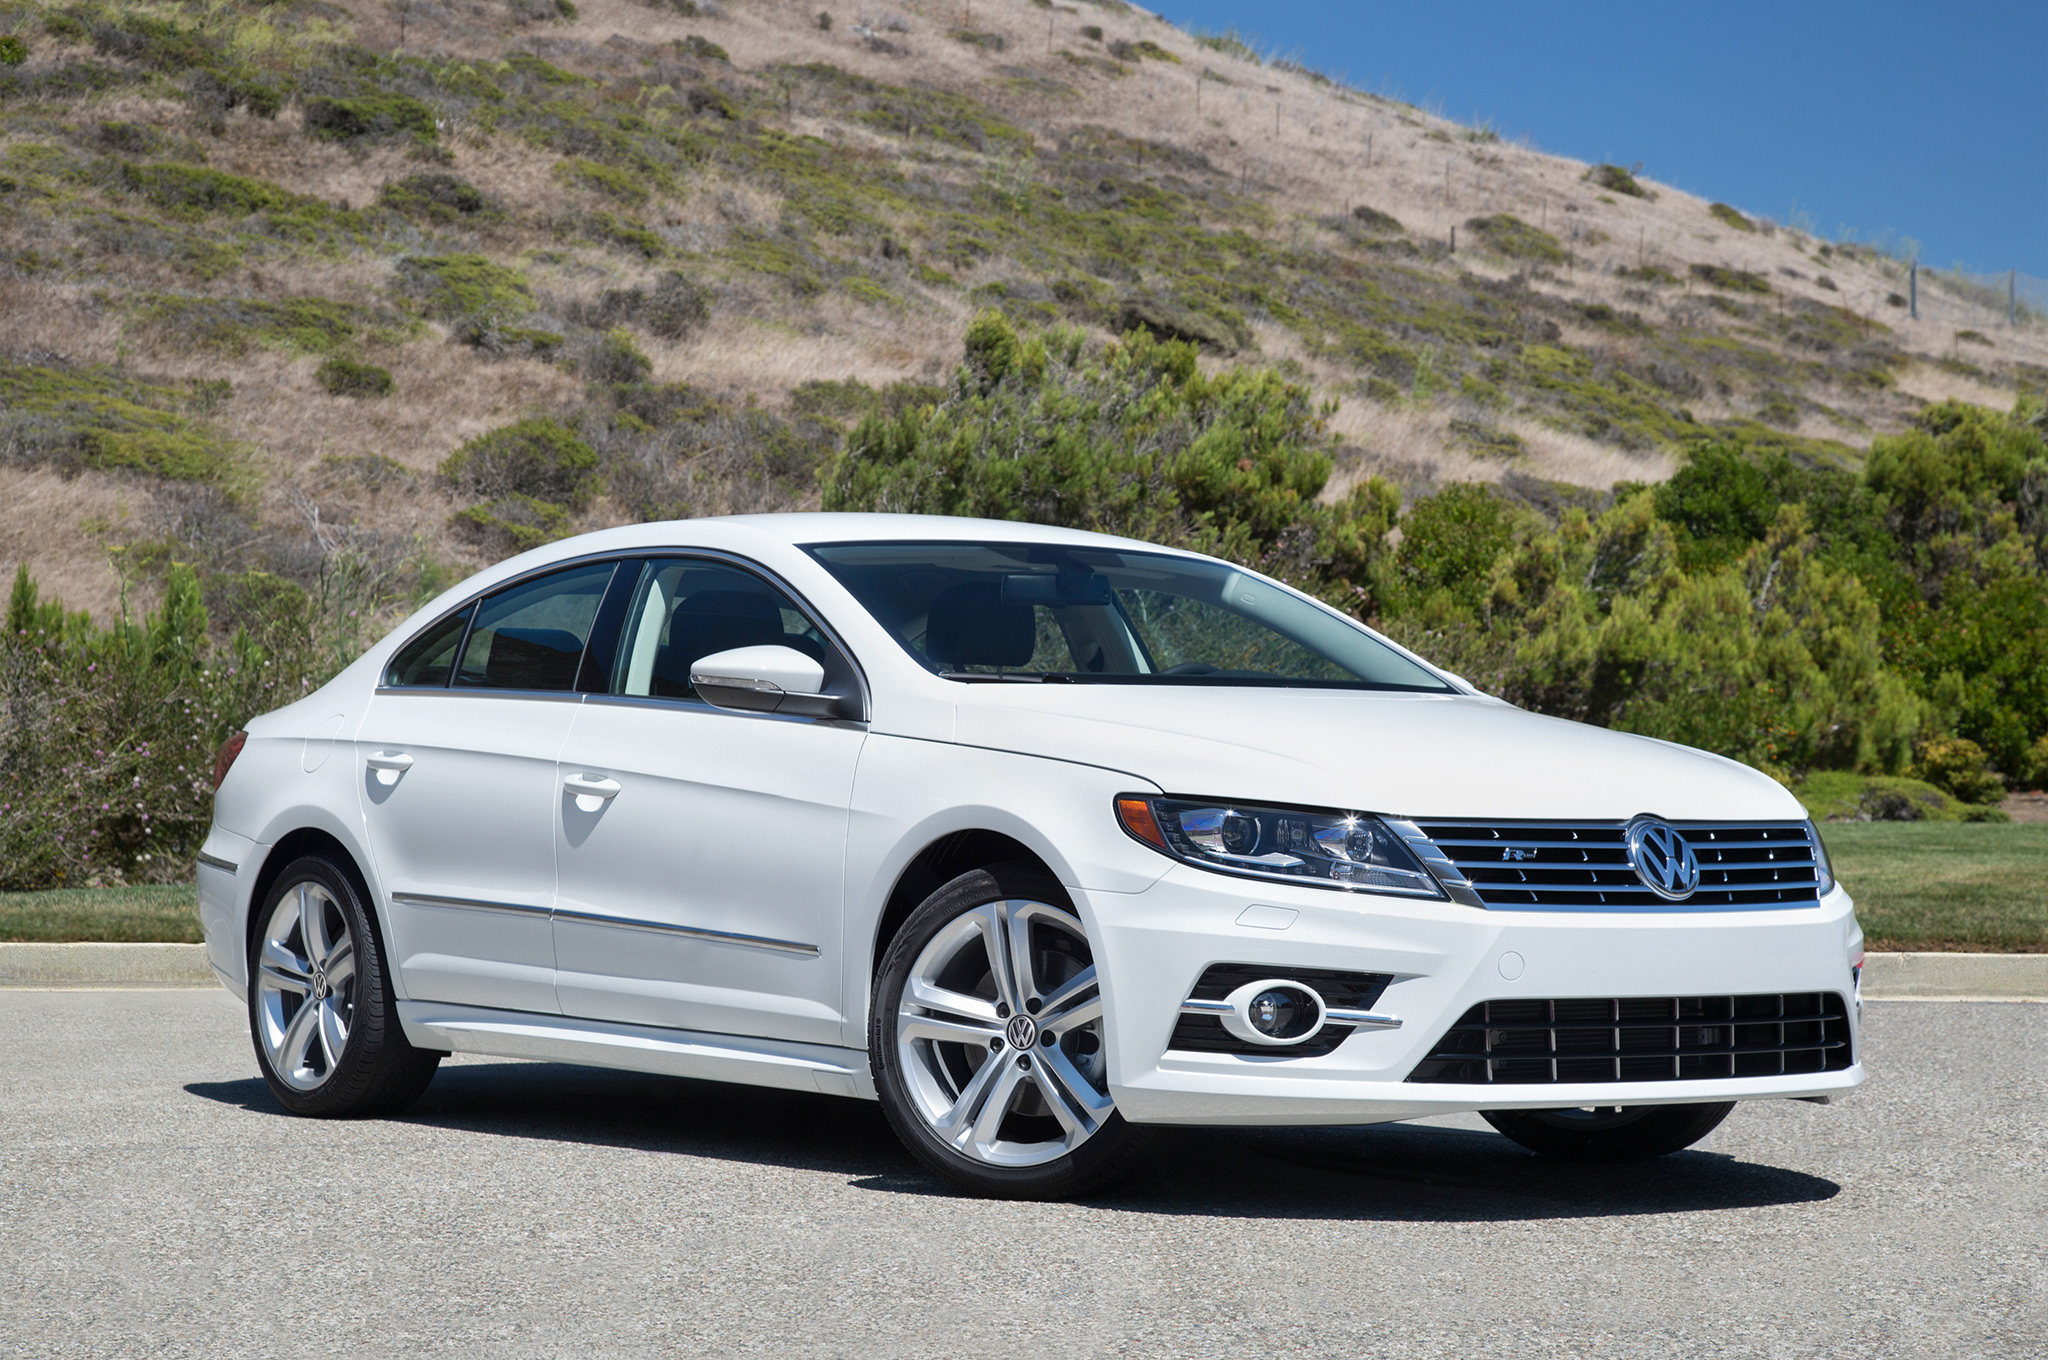 volkswagen cc rumored to get wagon variant to replace passat wagon in the u s. Black Bedroom Furniture Sets. Home Design Ideas